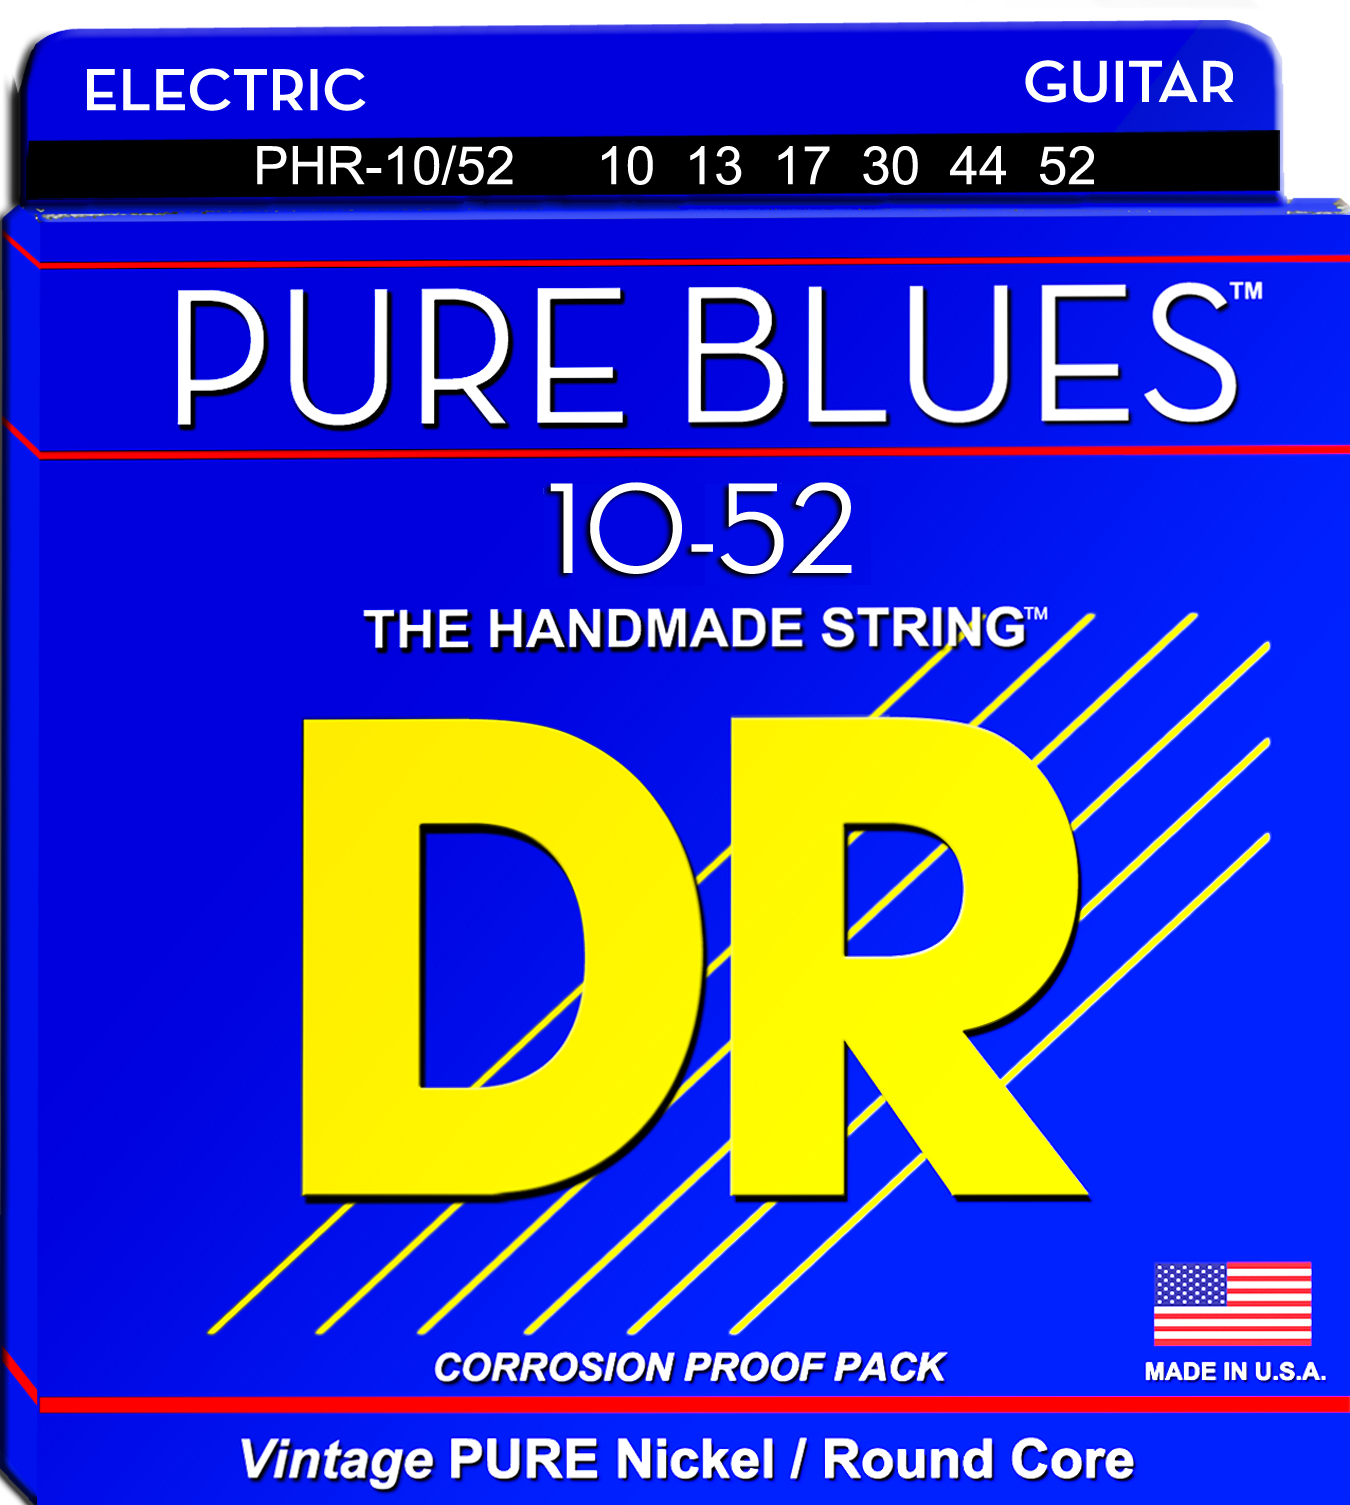 DR Pure Blues Pure Nickel Electric Guitar String Set - 10-52 Big-N-Heavy PHR-10/52